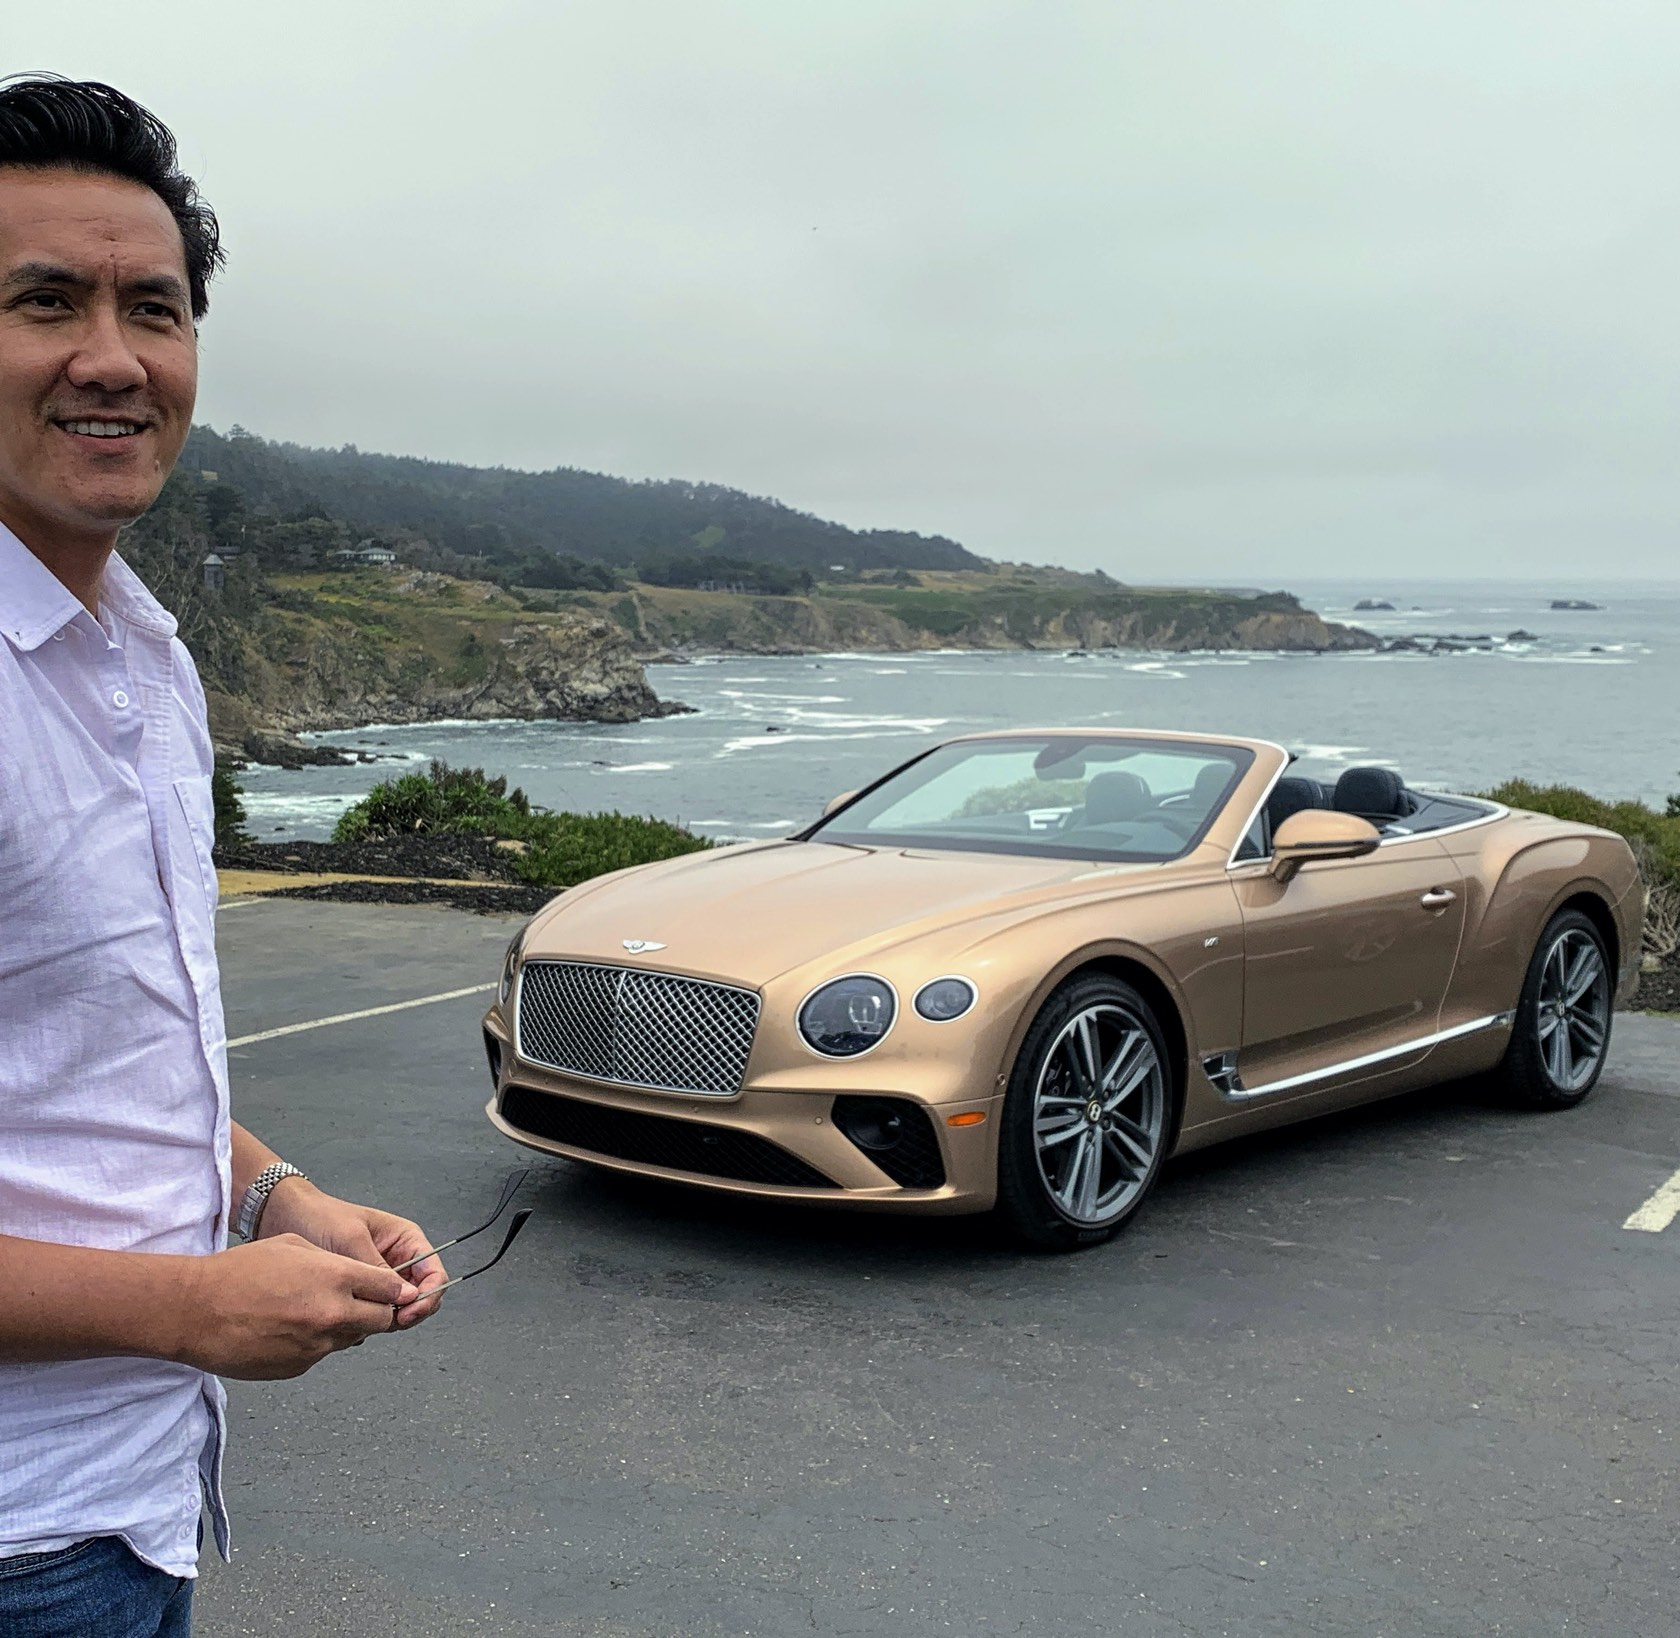 2020 Bentley Continental GT V8 First Drive Review: When